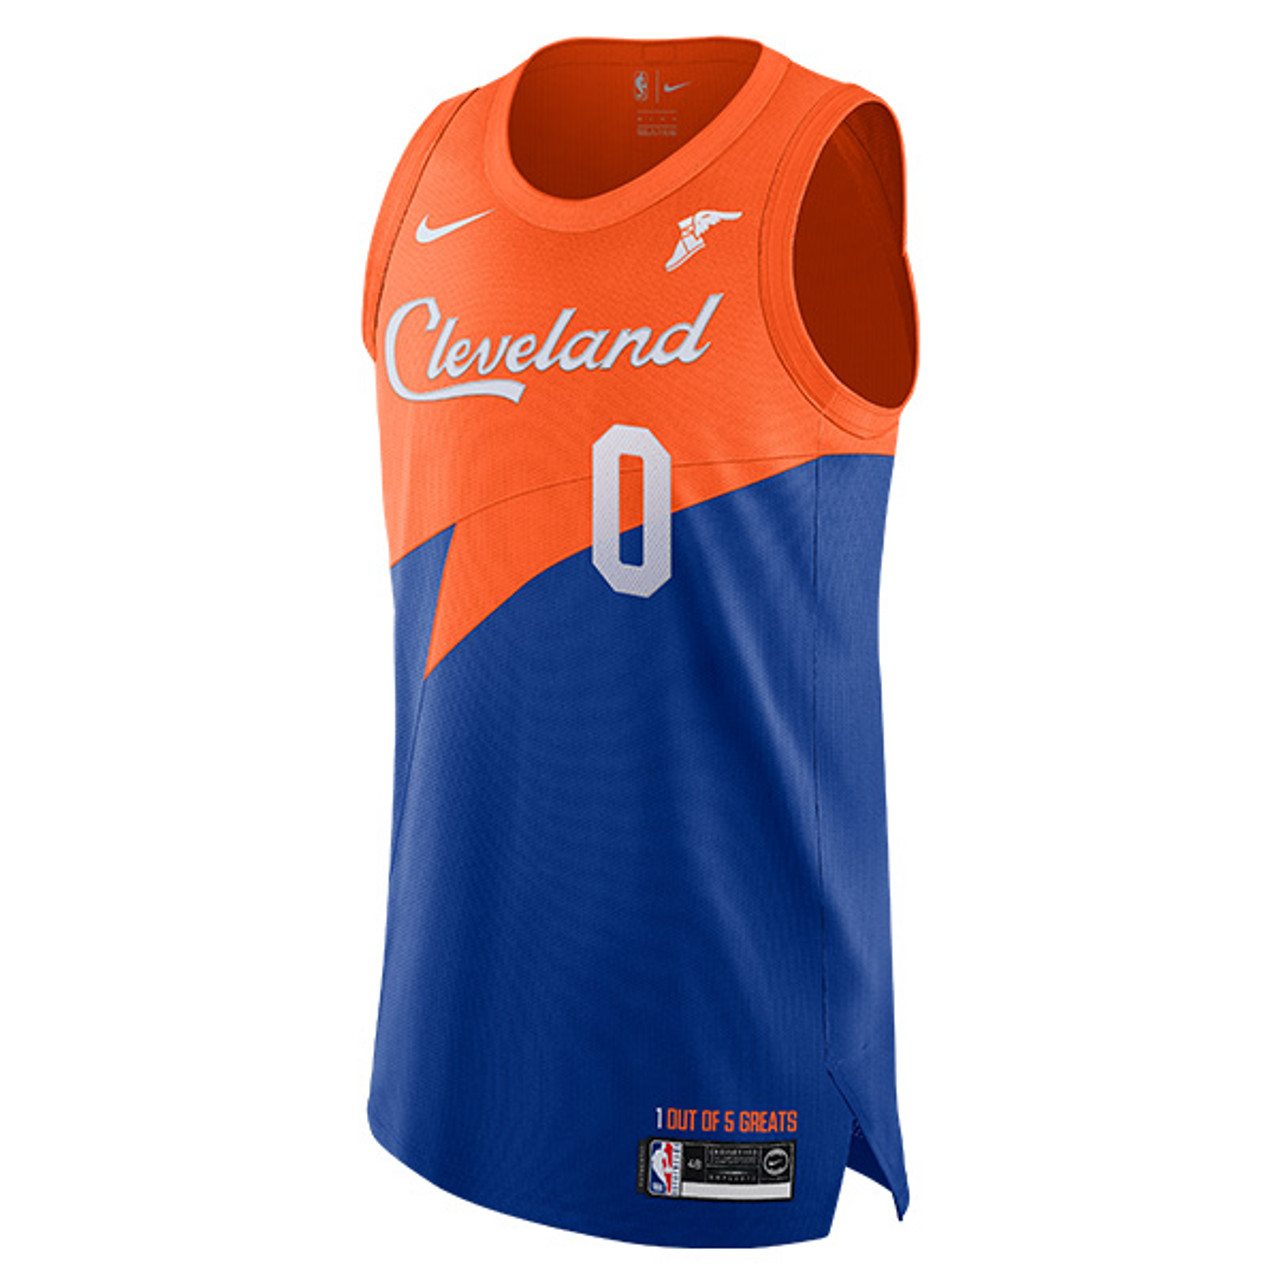 Royal Blue   Orange Kevin Love Cleveland City Edition Authentic Jersey by  Nike 49bed75dc